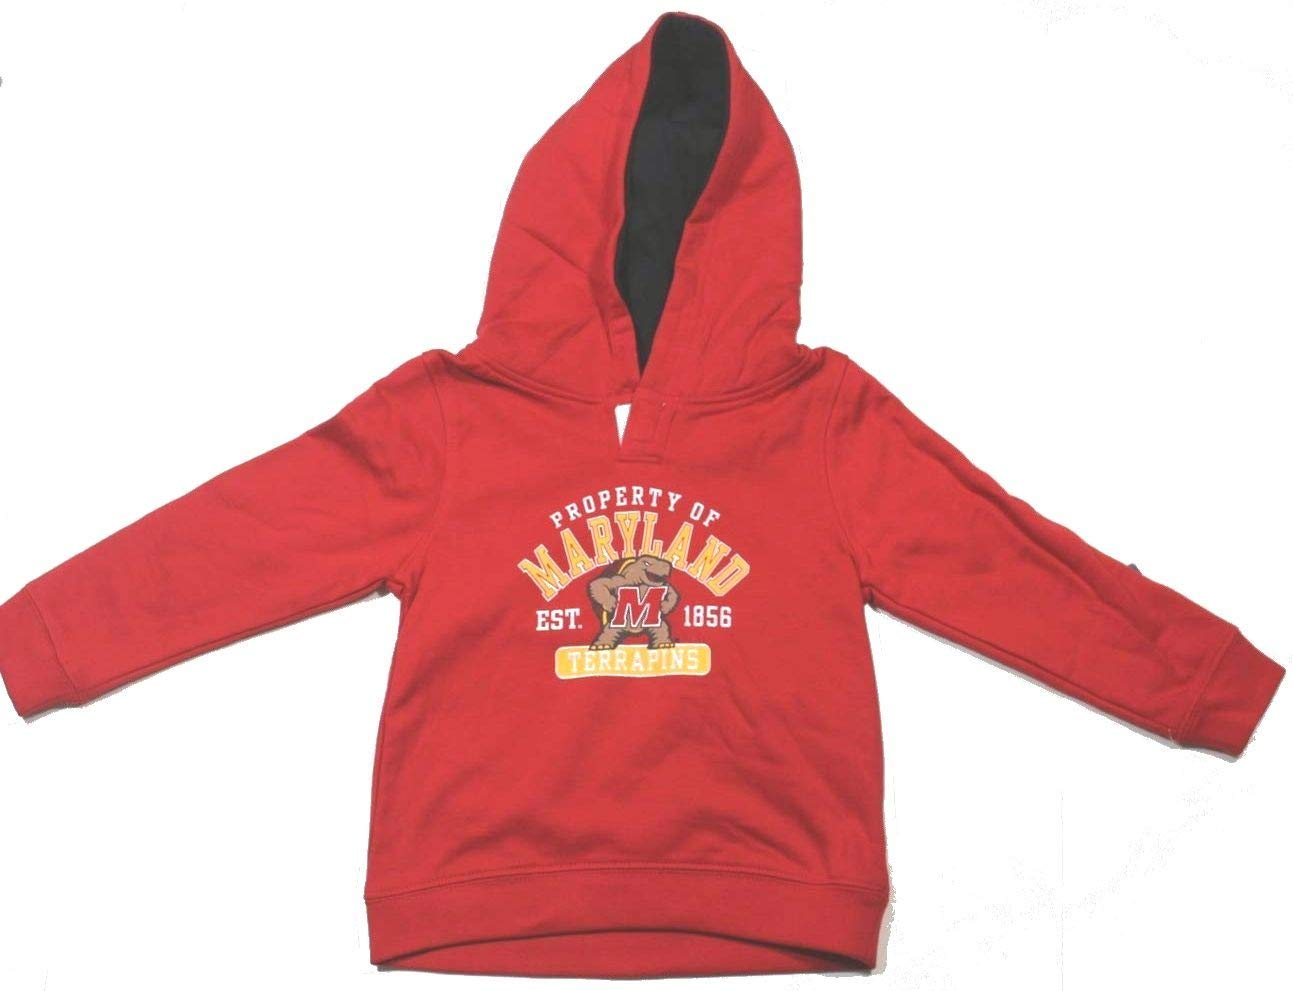 50339c3d3 Campus Lifestyle Toddler Boys Maryland Terrapins Hoodie Hooded Sweatshirt  Size 3T